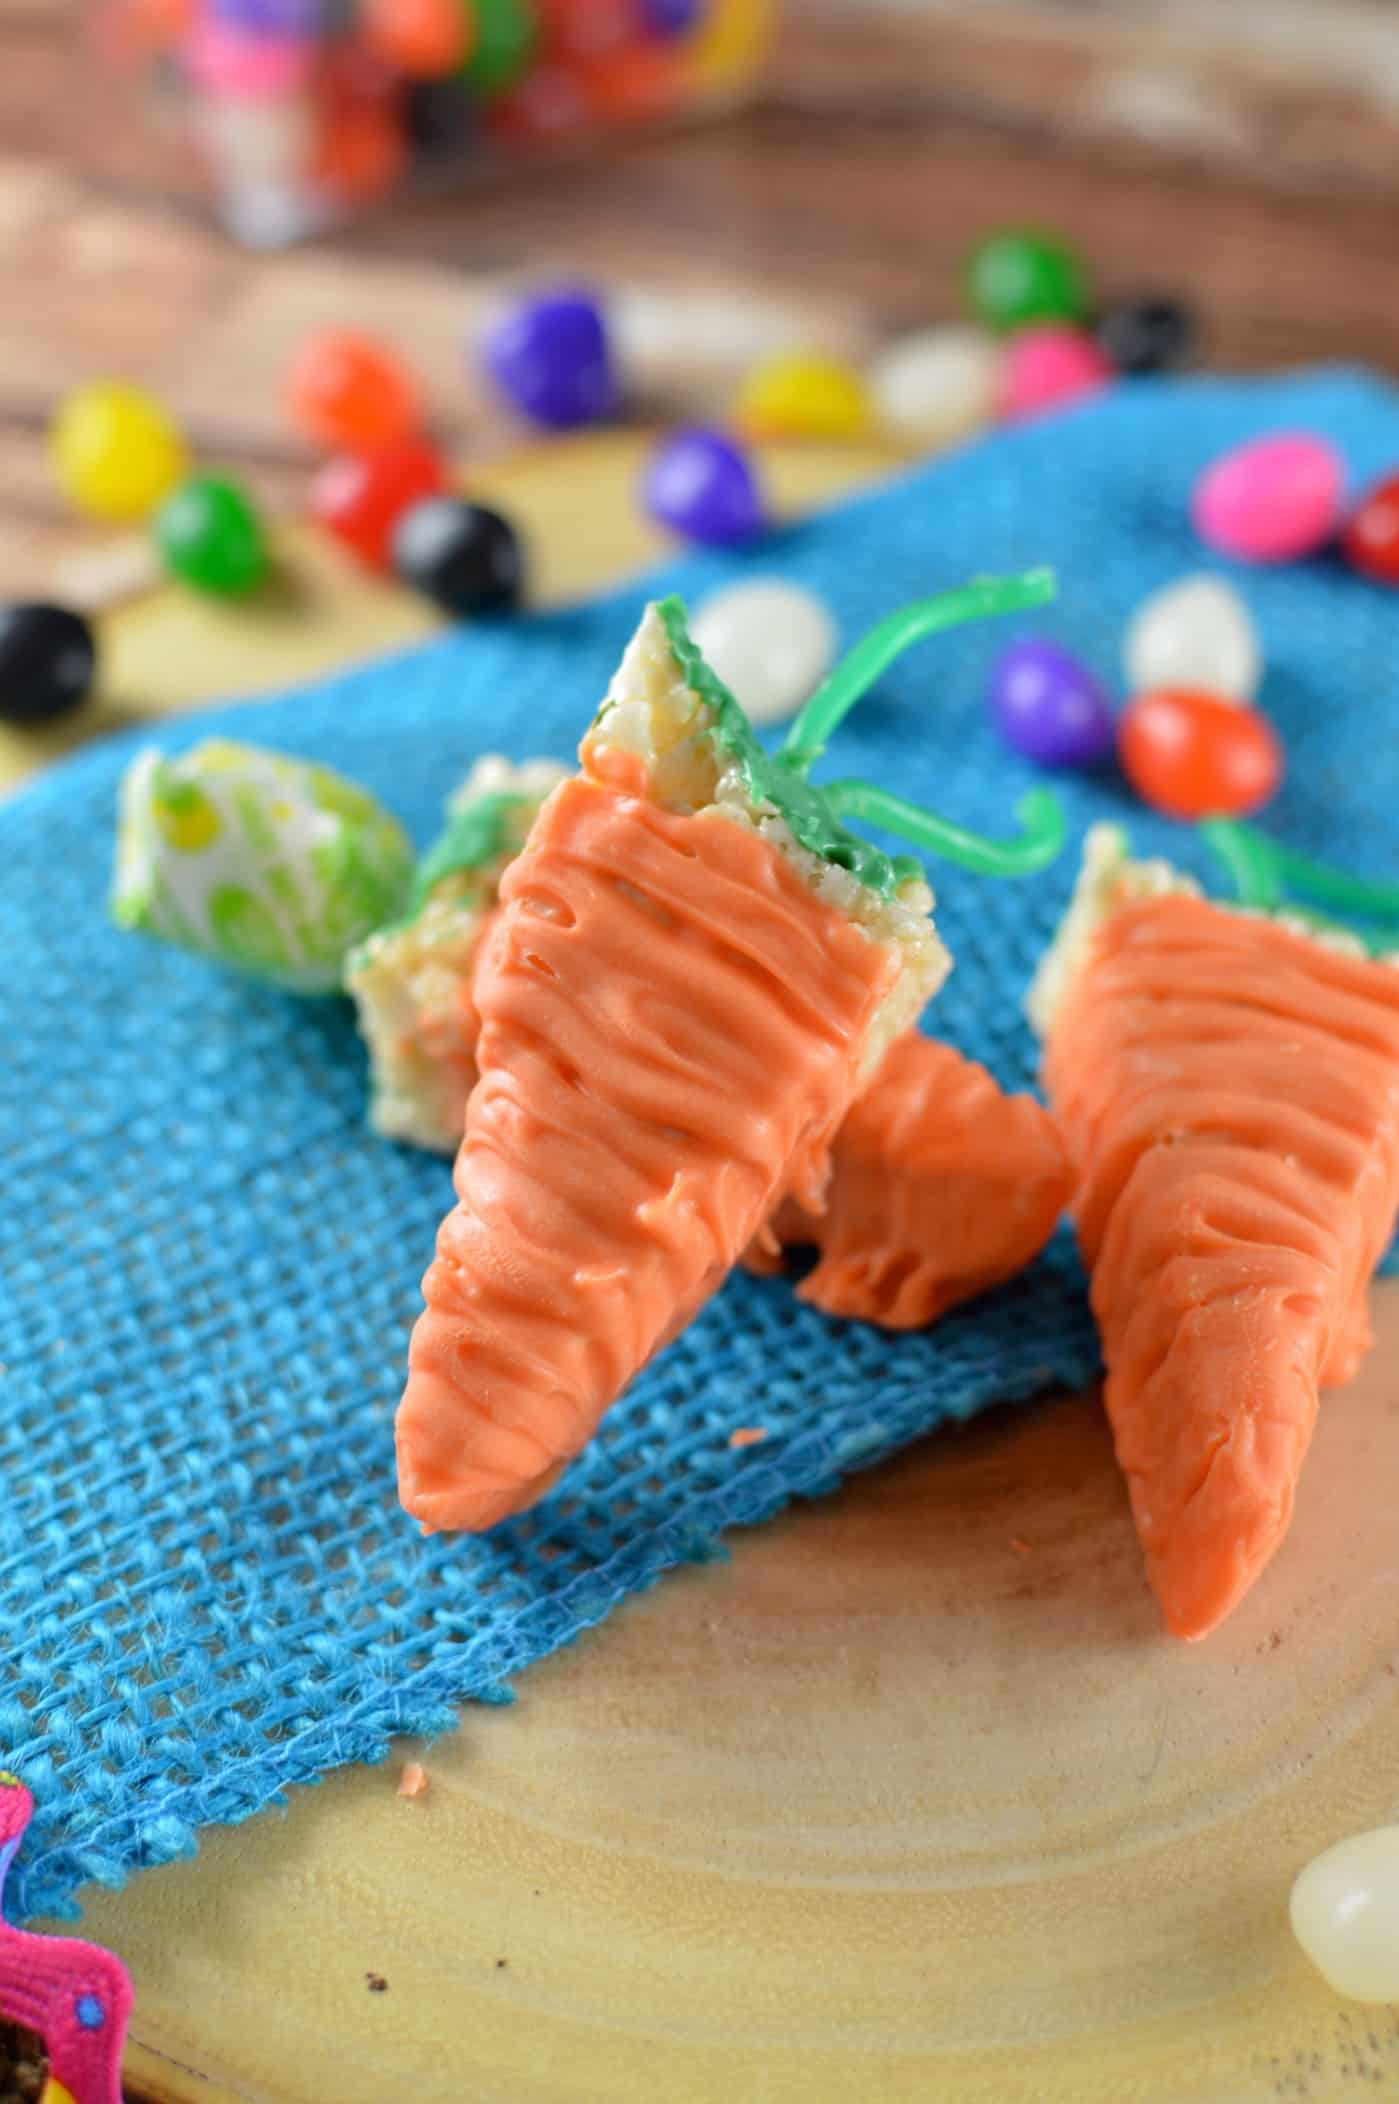 If you are looking for tasty and fun Easter dessert recipes, these carrot krispies are so easy to make - and everyone loves them! Enjoy this holiday sweet.